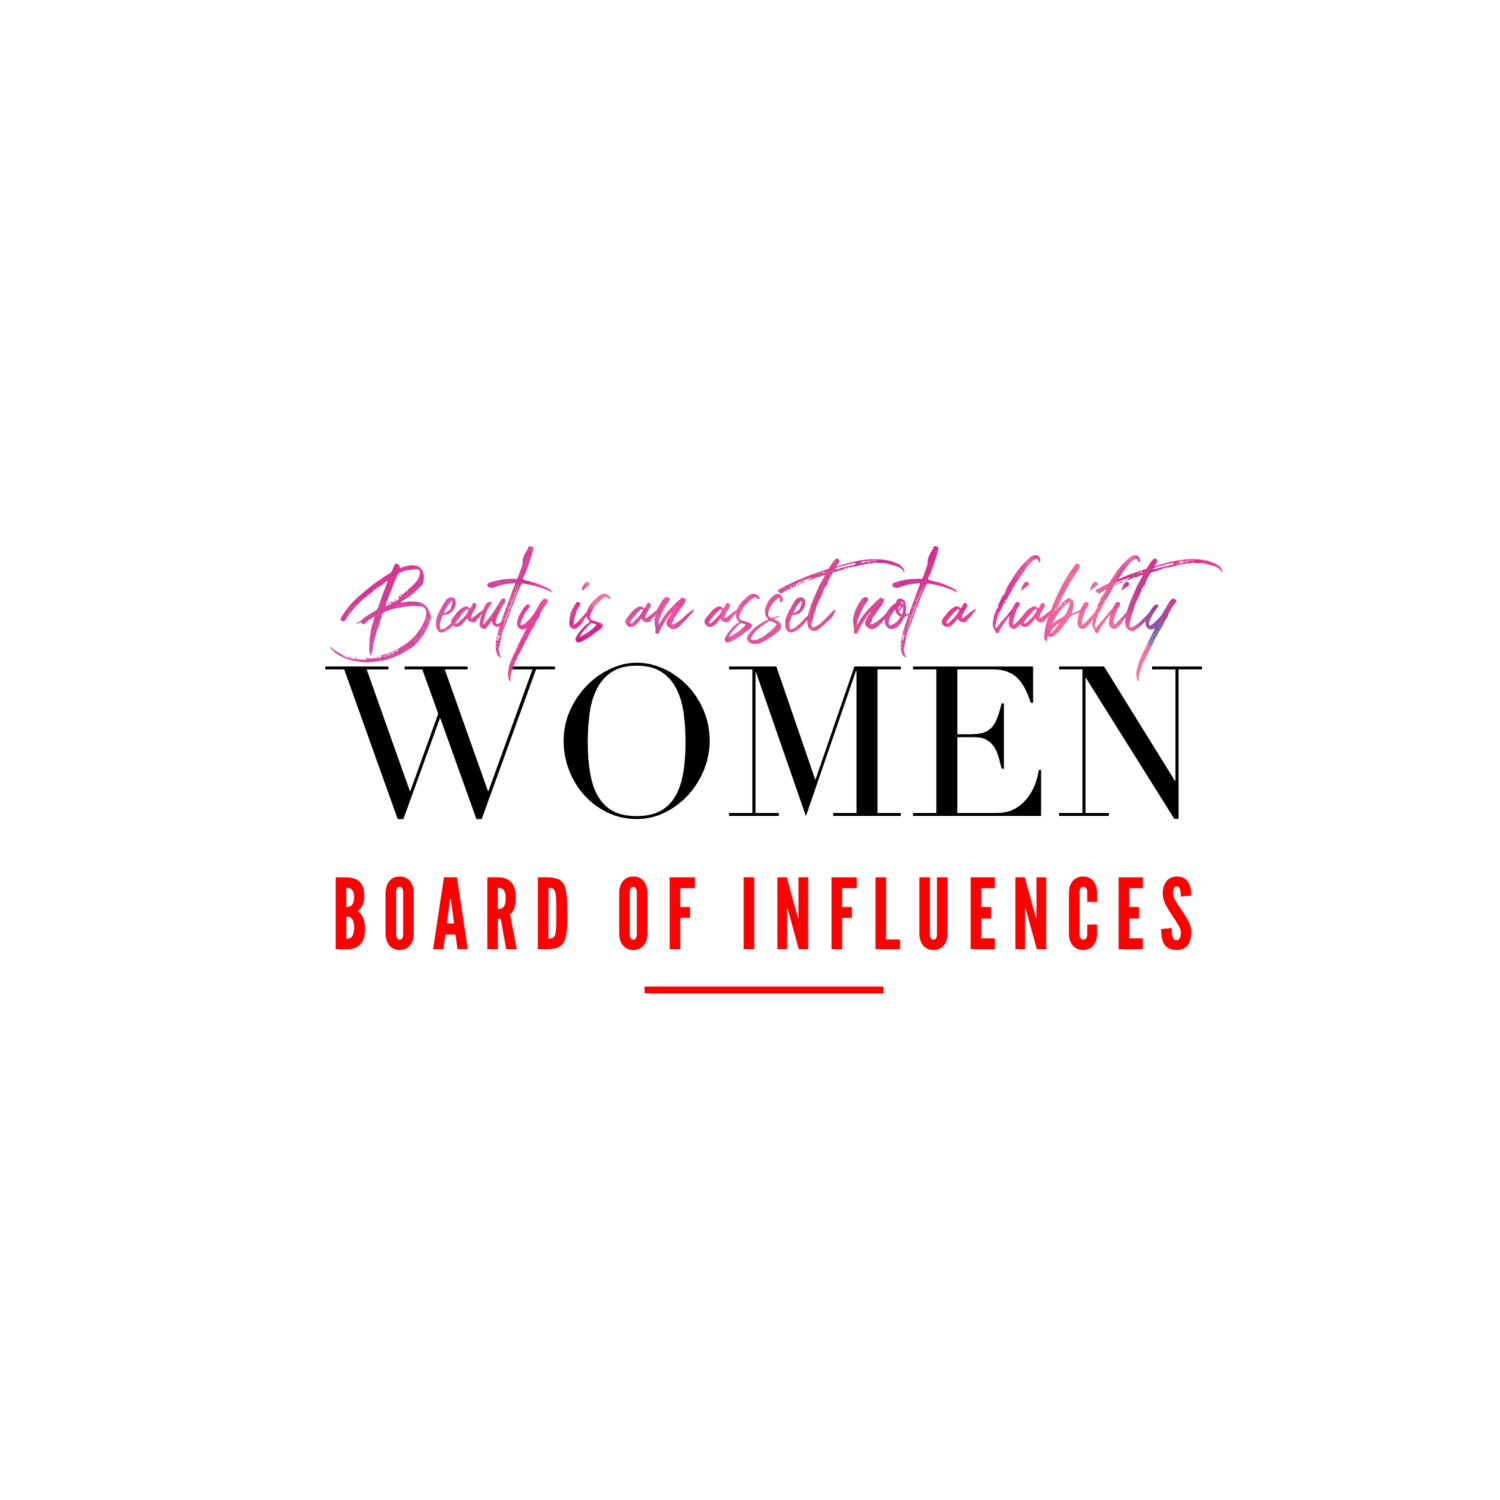 WOMEN - Board of Influences